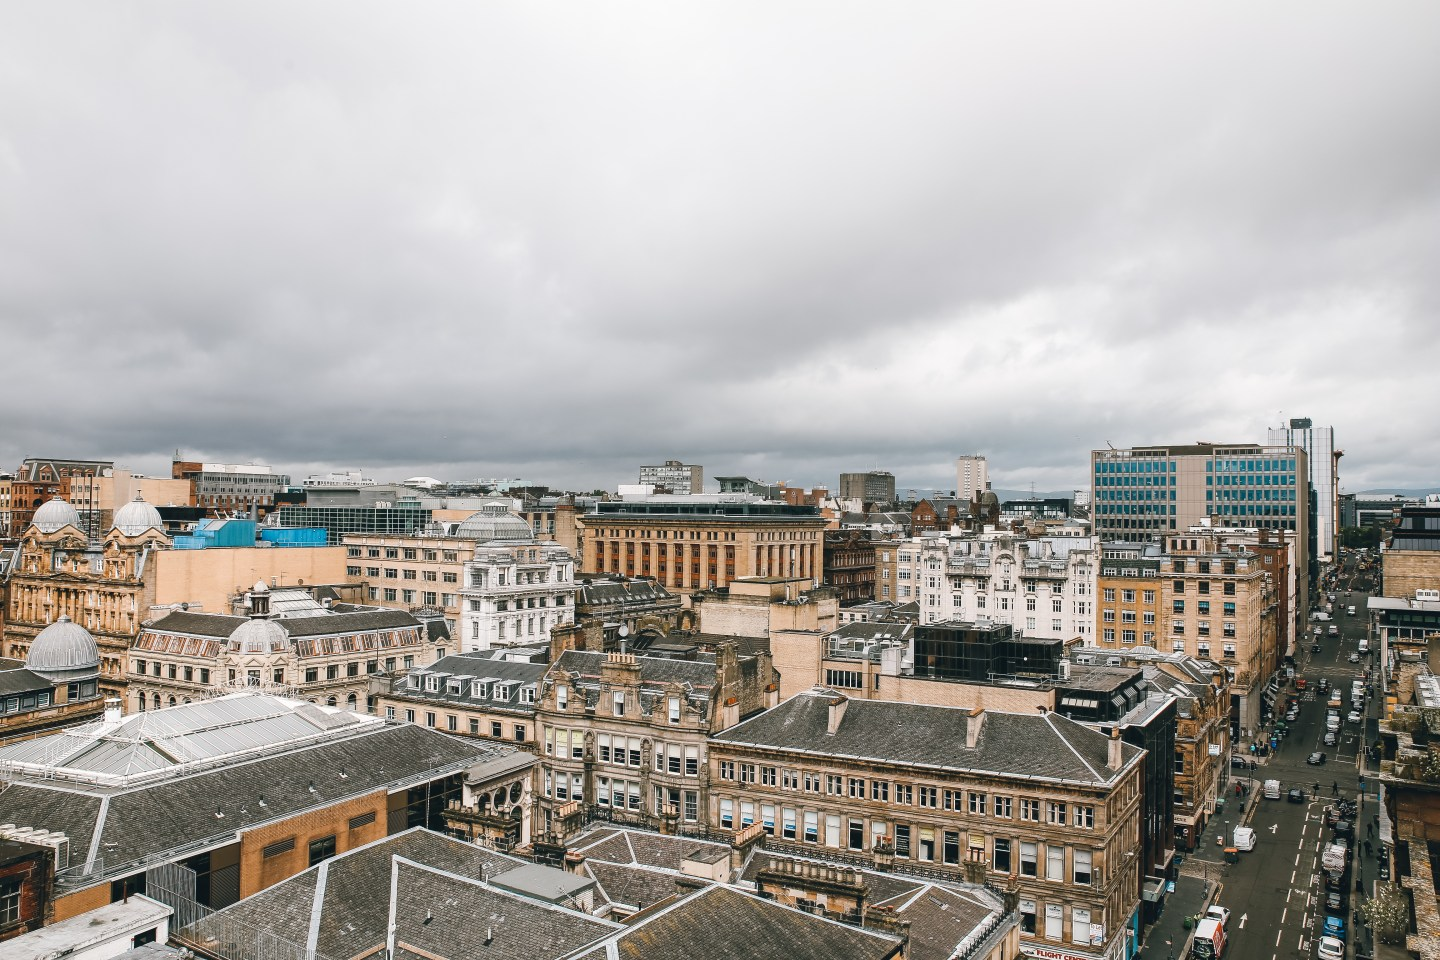 Glasgow from above - the view from The Lighthouse